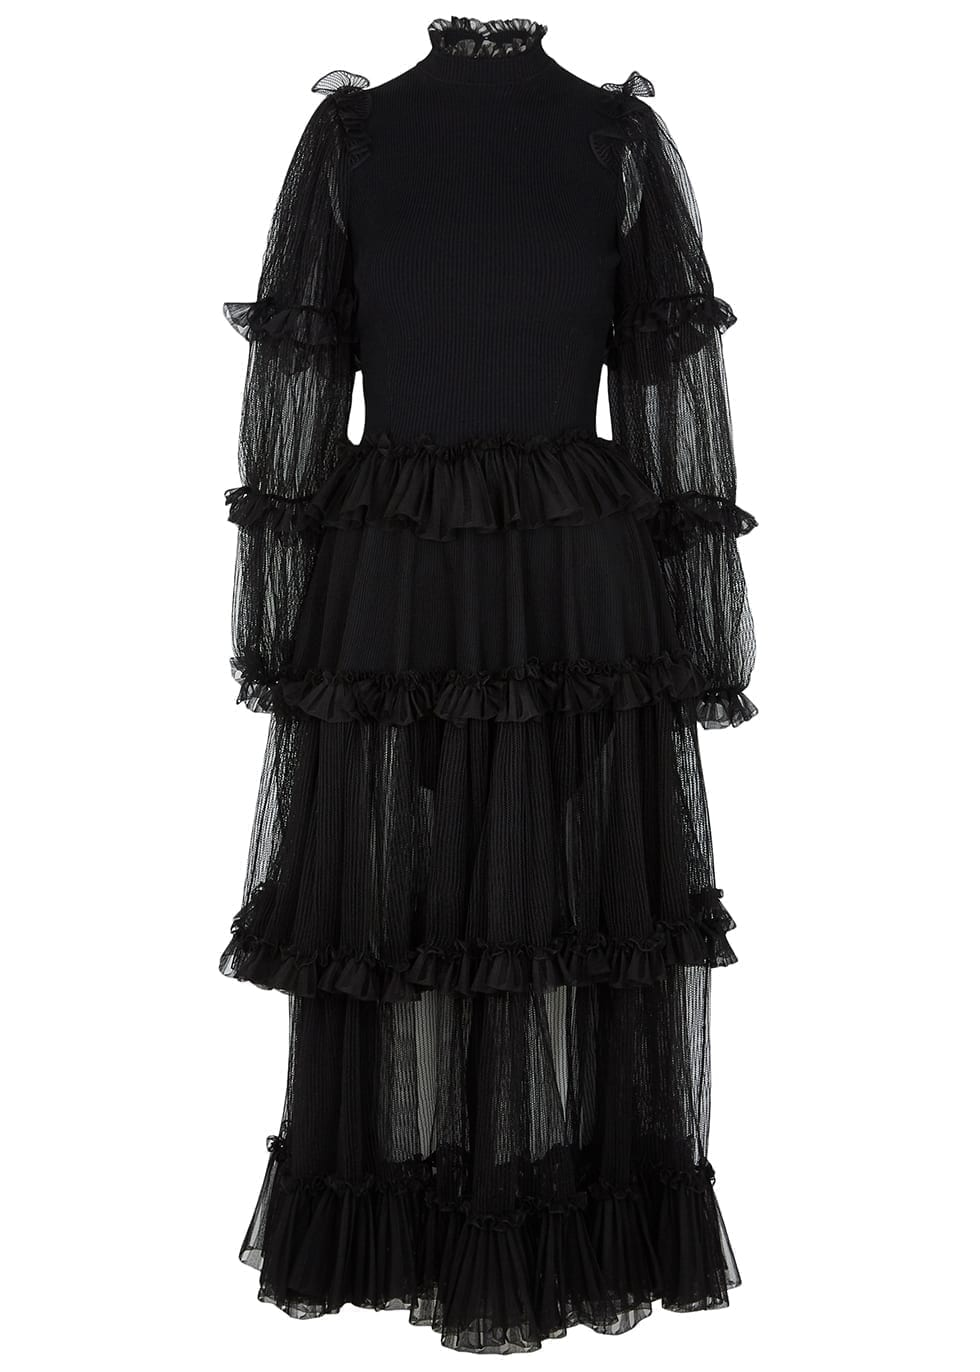 ALEXANDER MCQUEEN Black Ruffled Tulle And Silk Dress